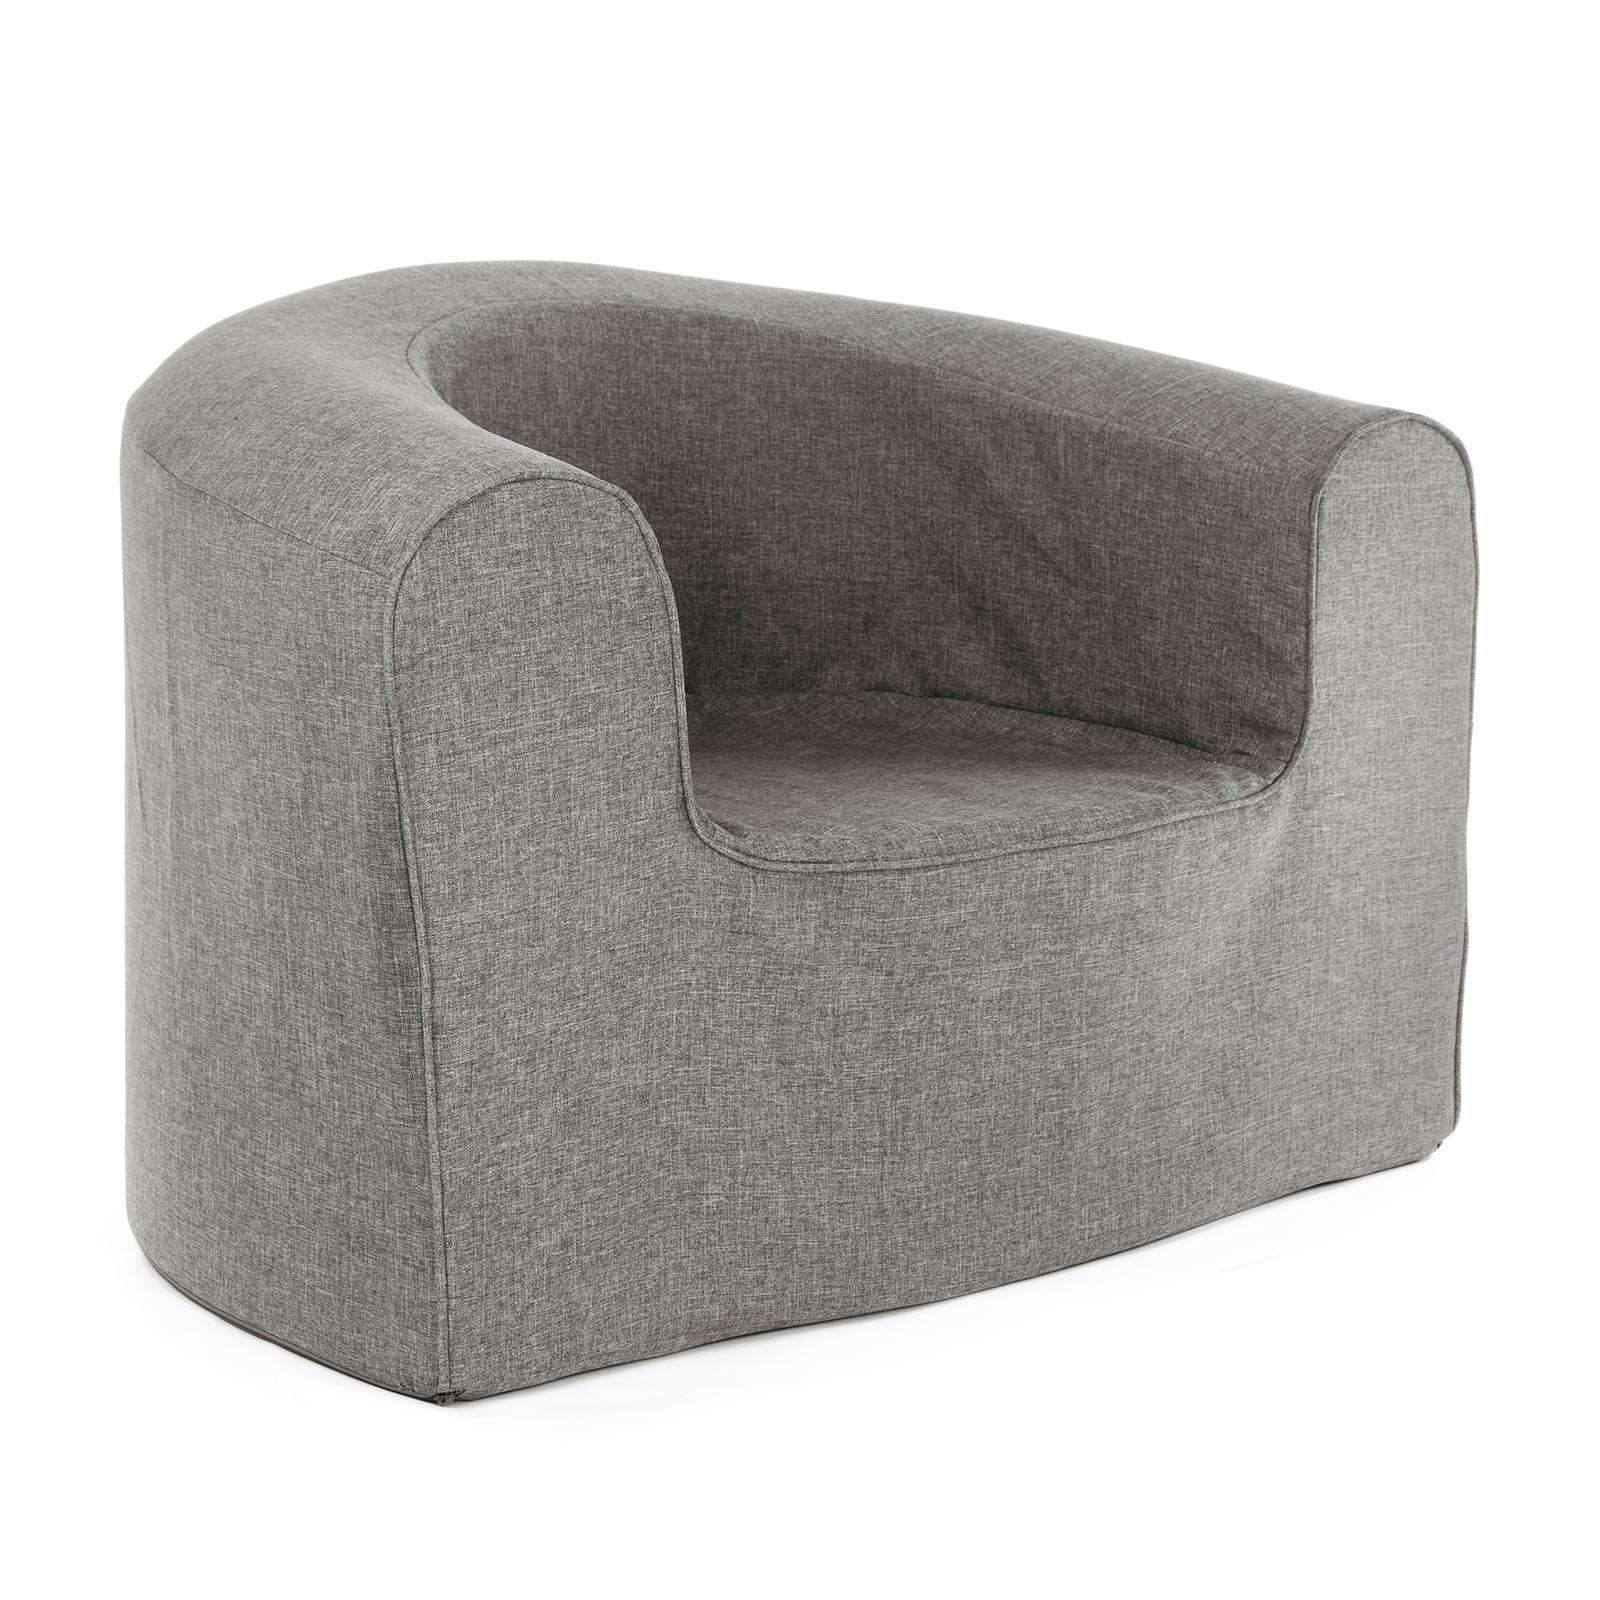 Grey linen look adult pop lounge foam armchair seat